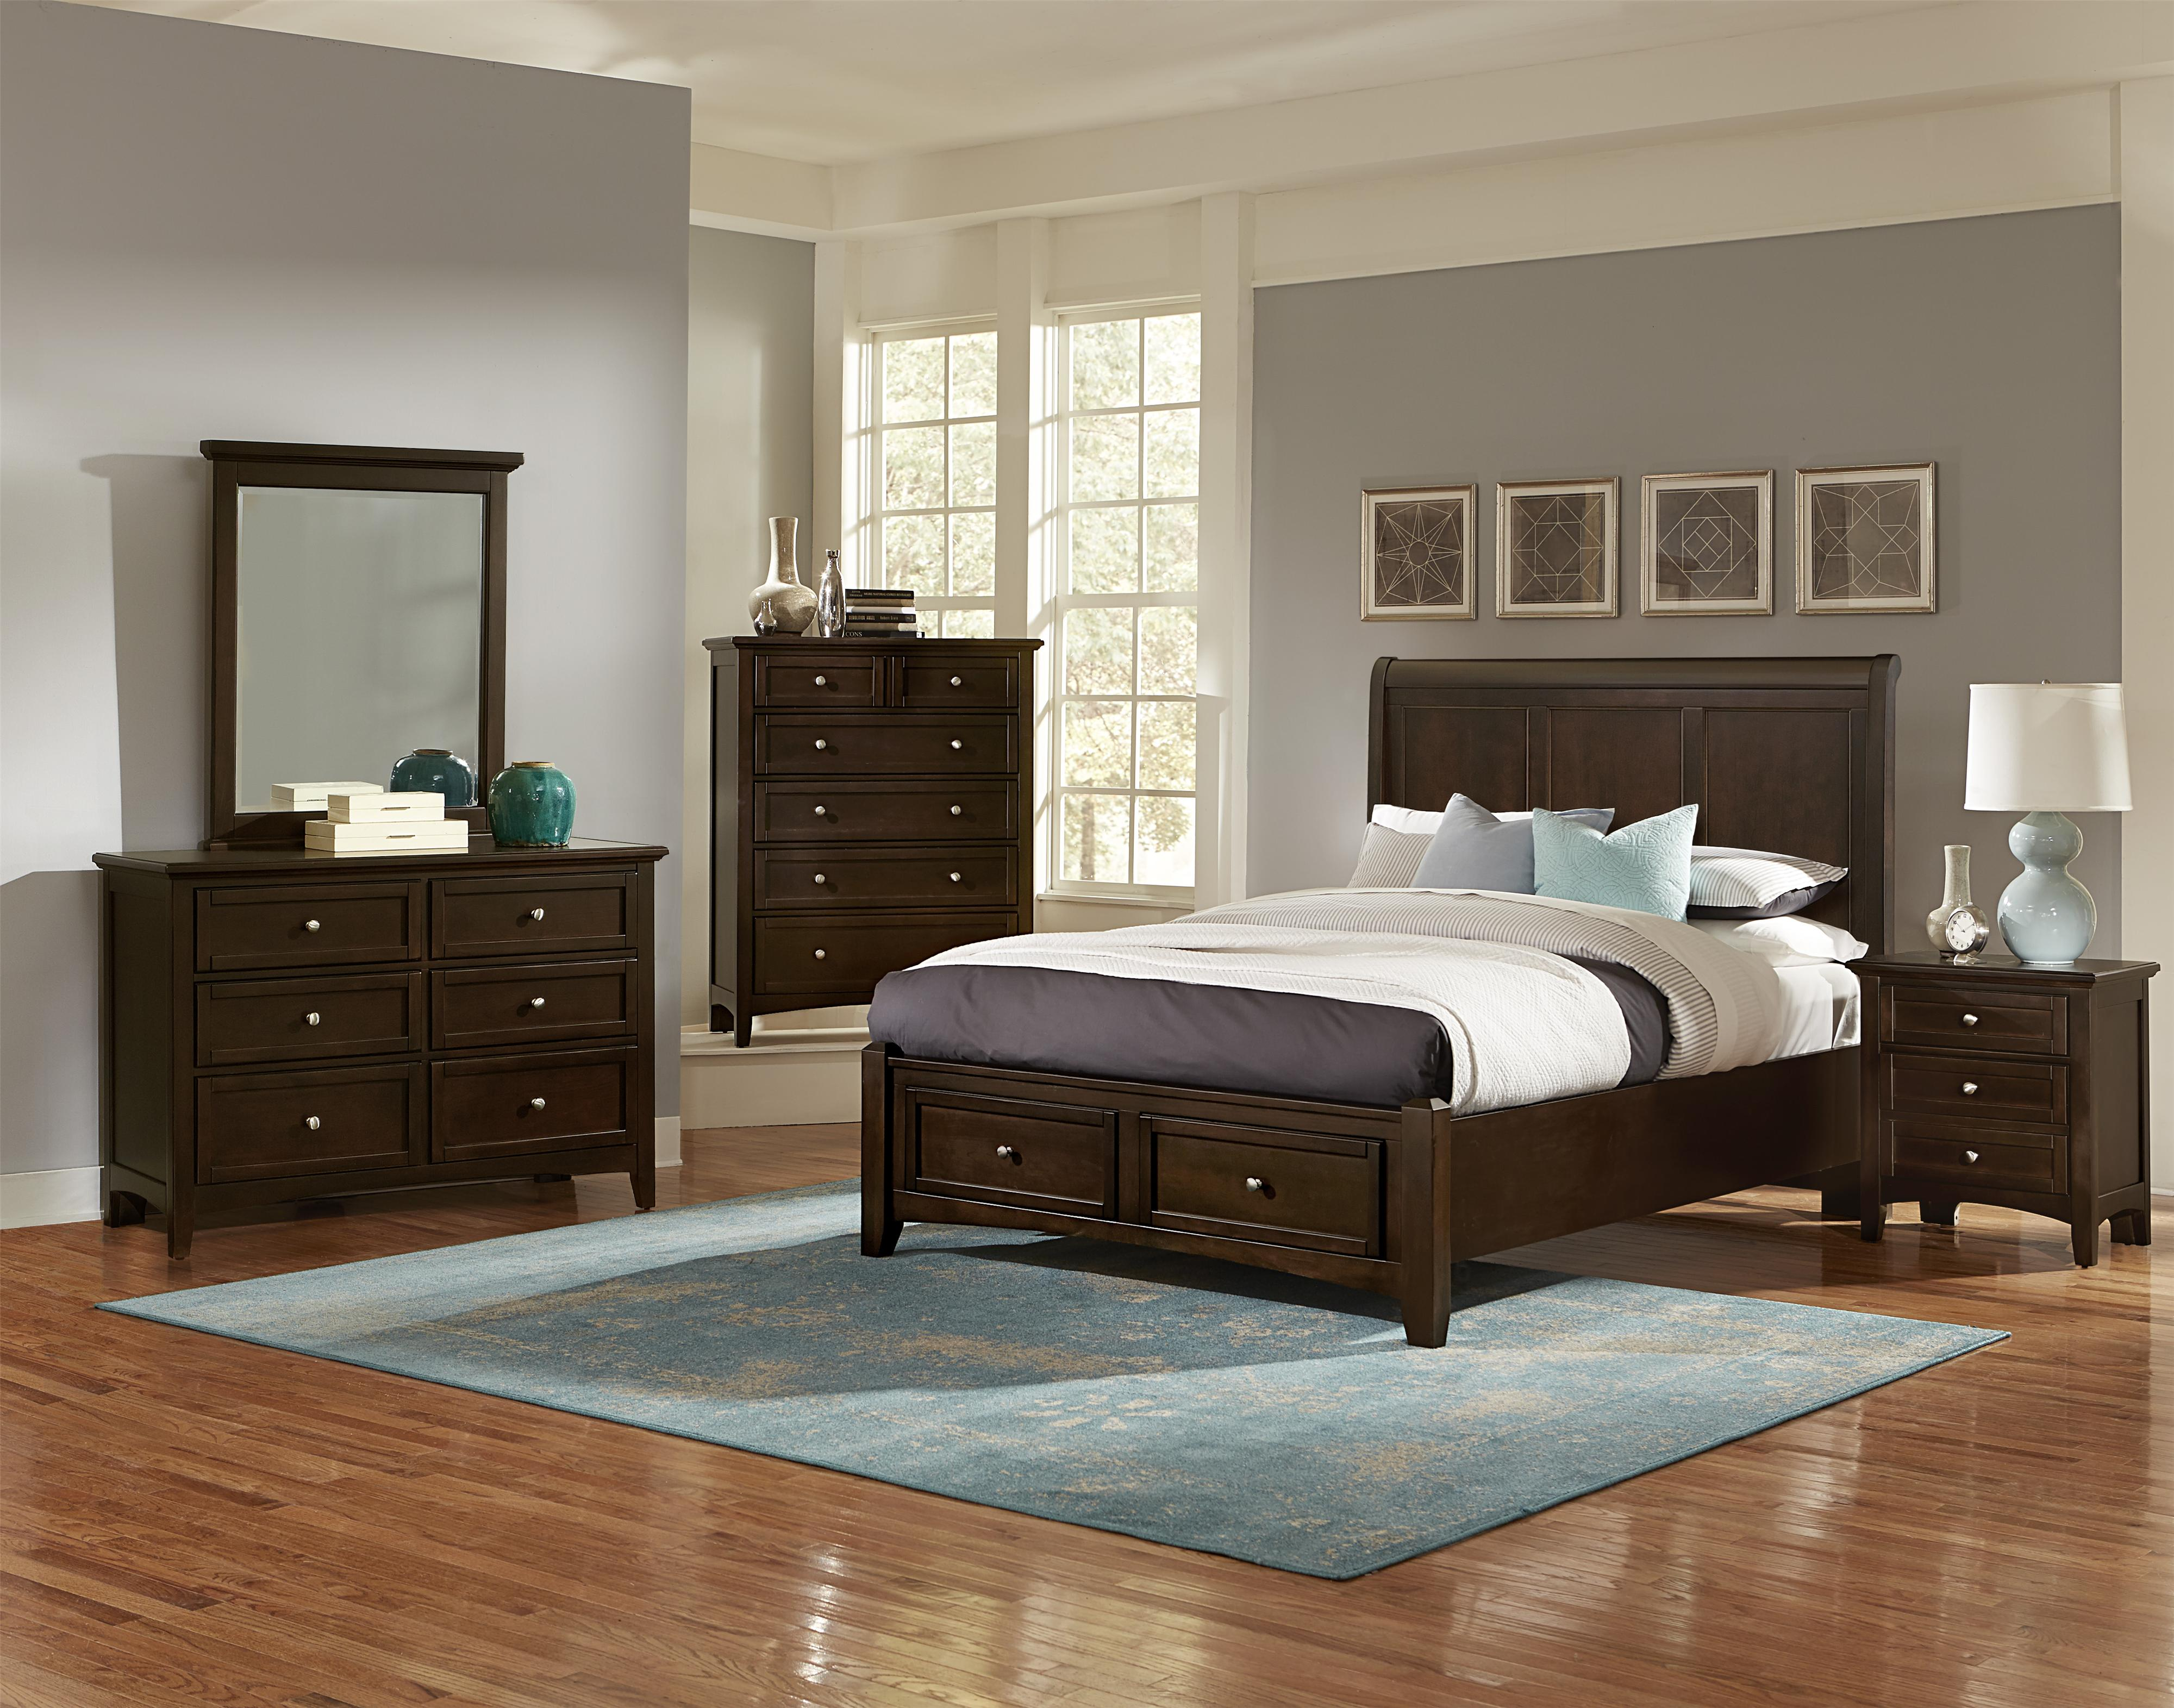 Bonanza Queen Bedroom Group by Vaughan Bassett at Powell's Furniture and Mattress